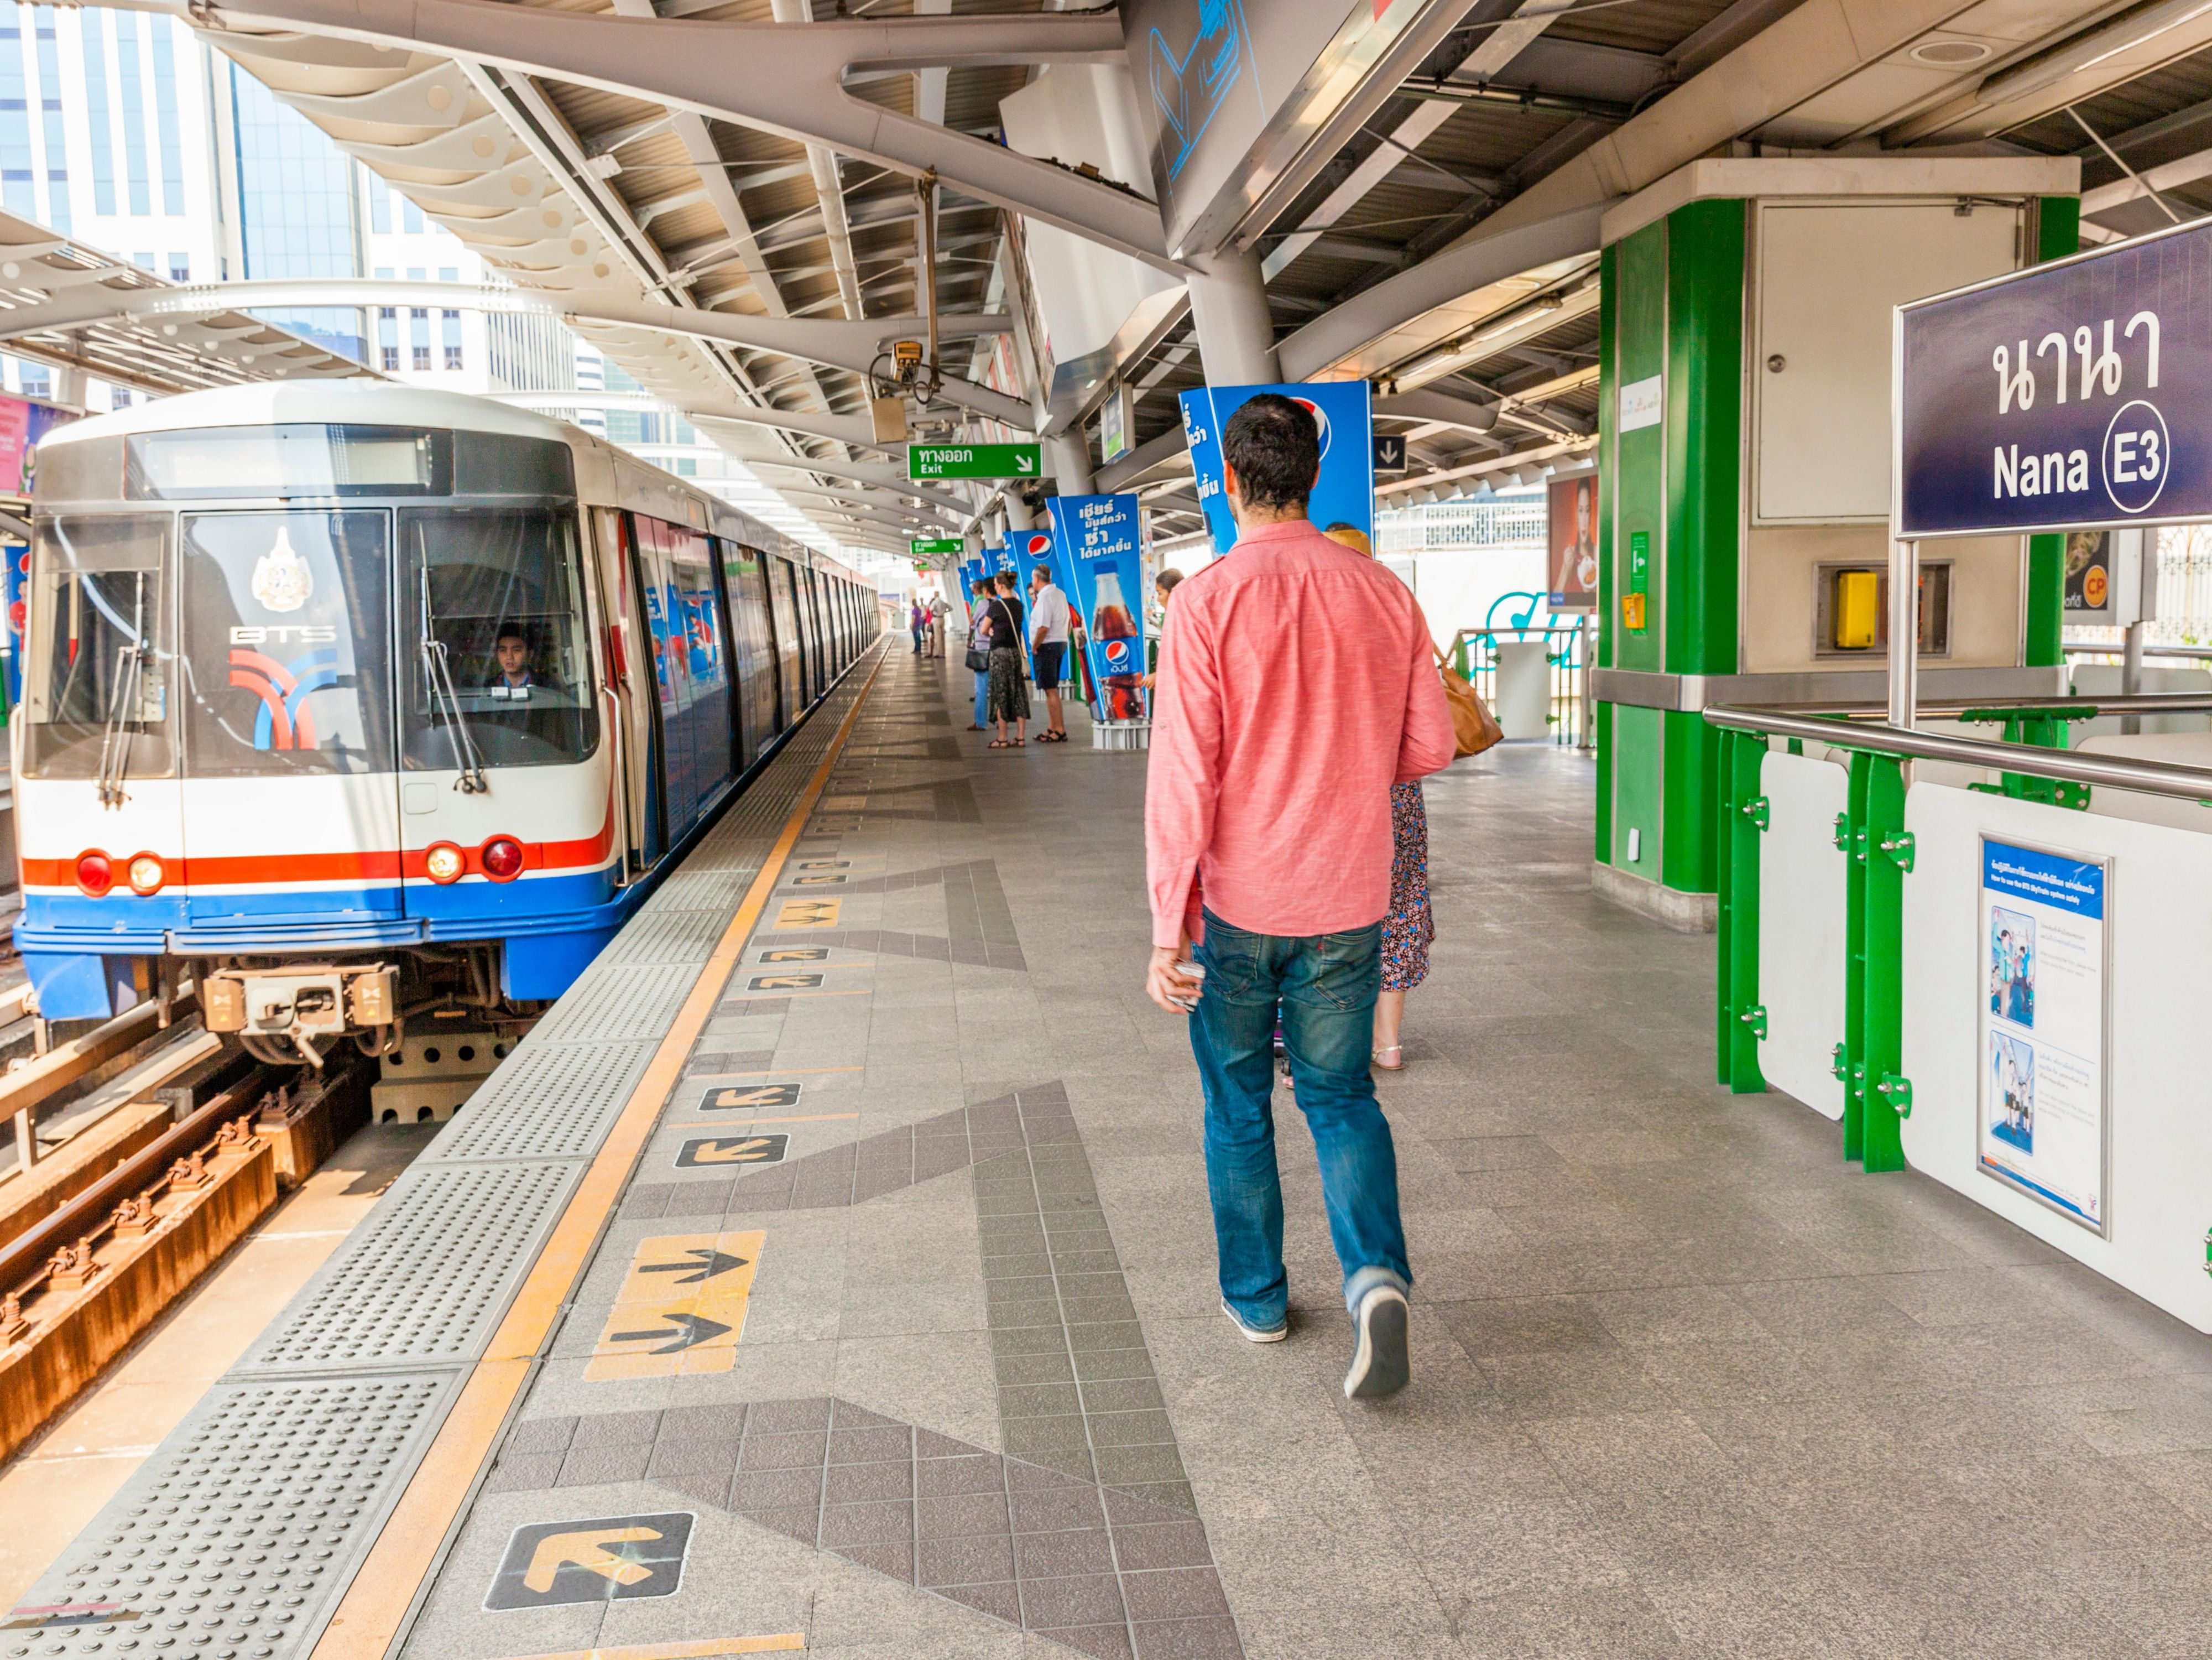 BTS Skytrain Nana Station located right in front of Sukhumvit 11